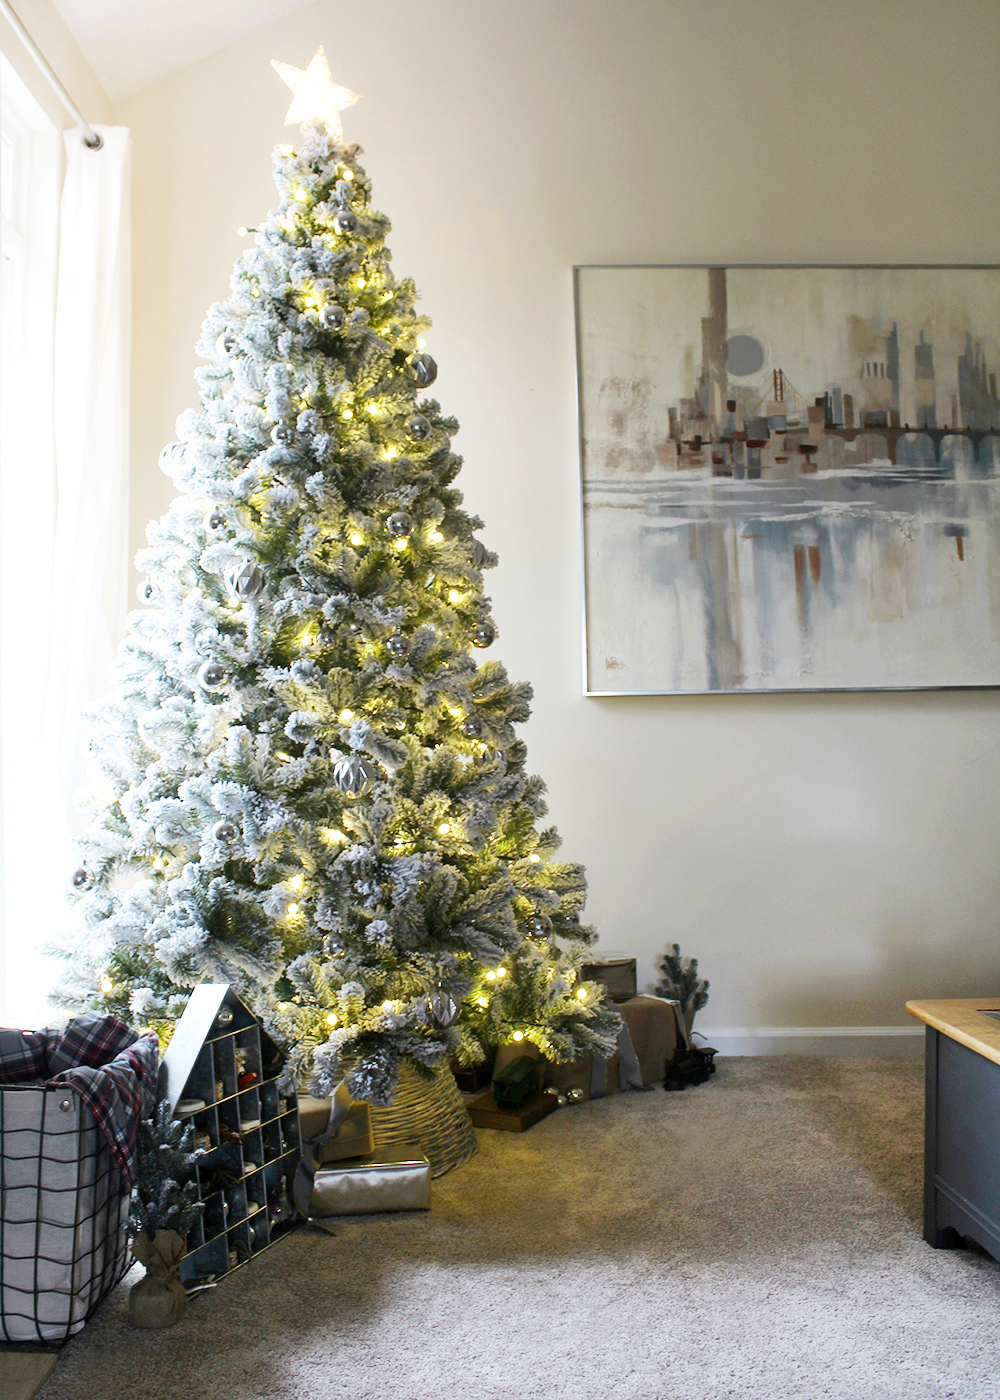 A modern flocked Christmas tree with silver ornaments #ChristmasTree #FlockedTree #ChristmasDecor